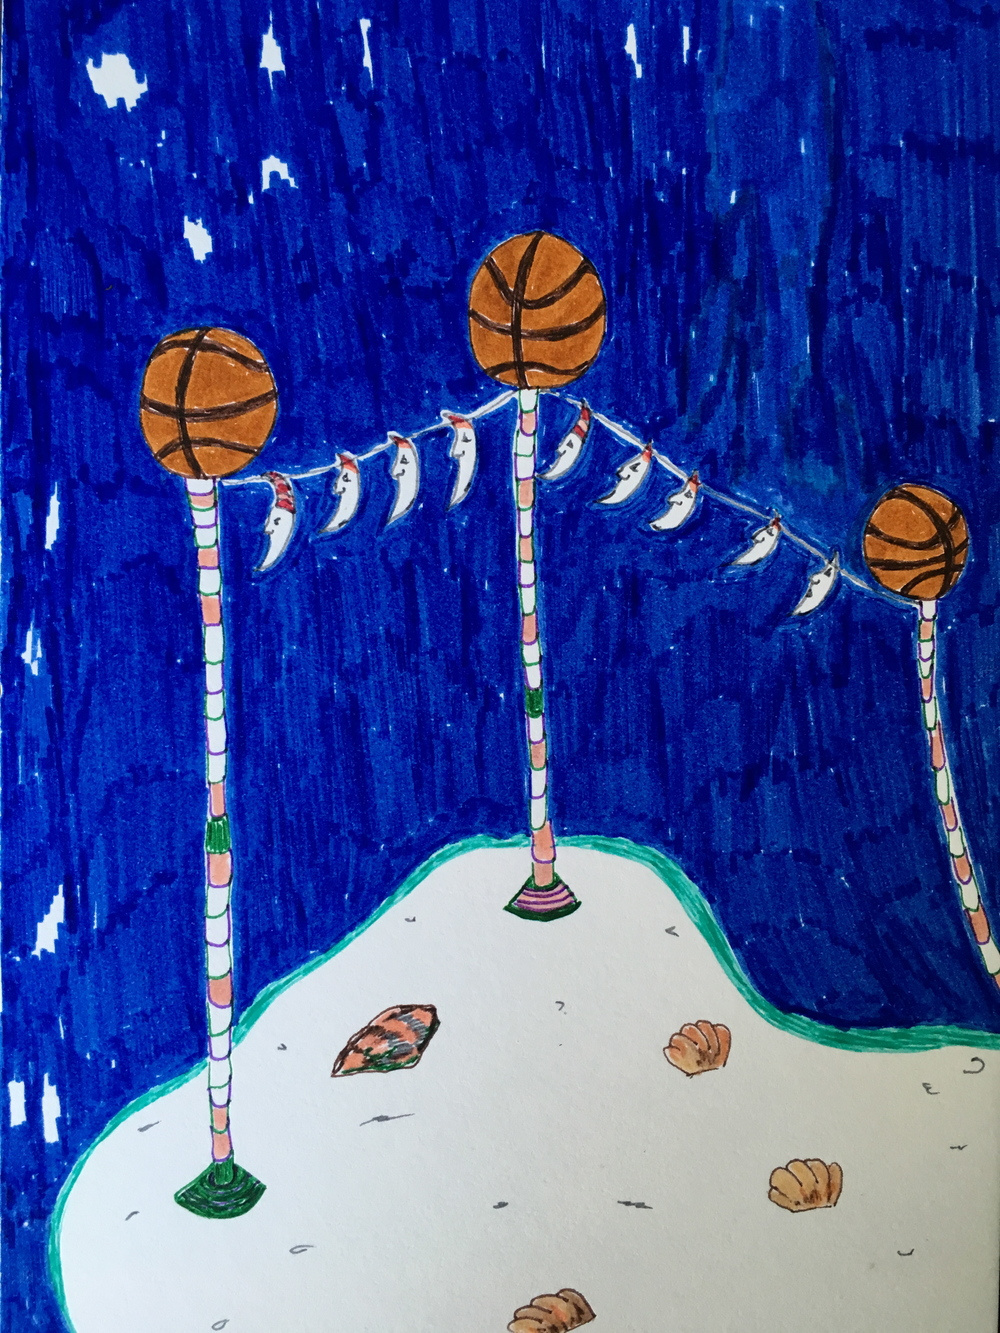 Basketball island, 2015, felt tip and fine liner on paper, 14.8 x 21 cm